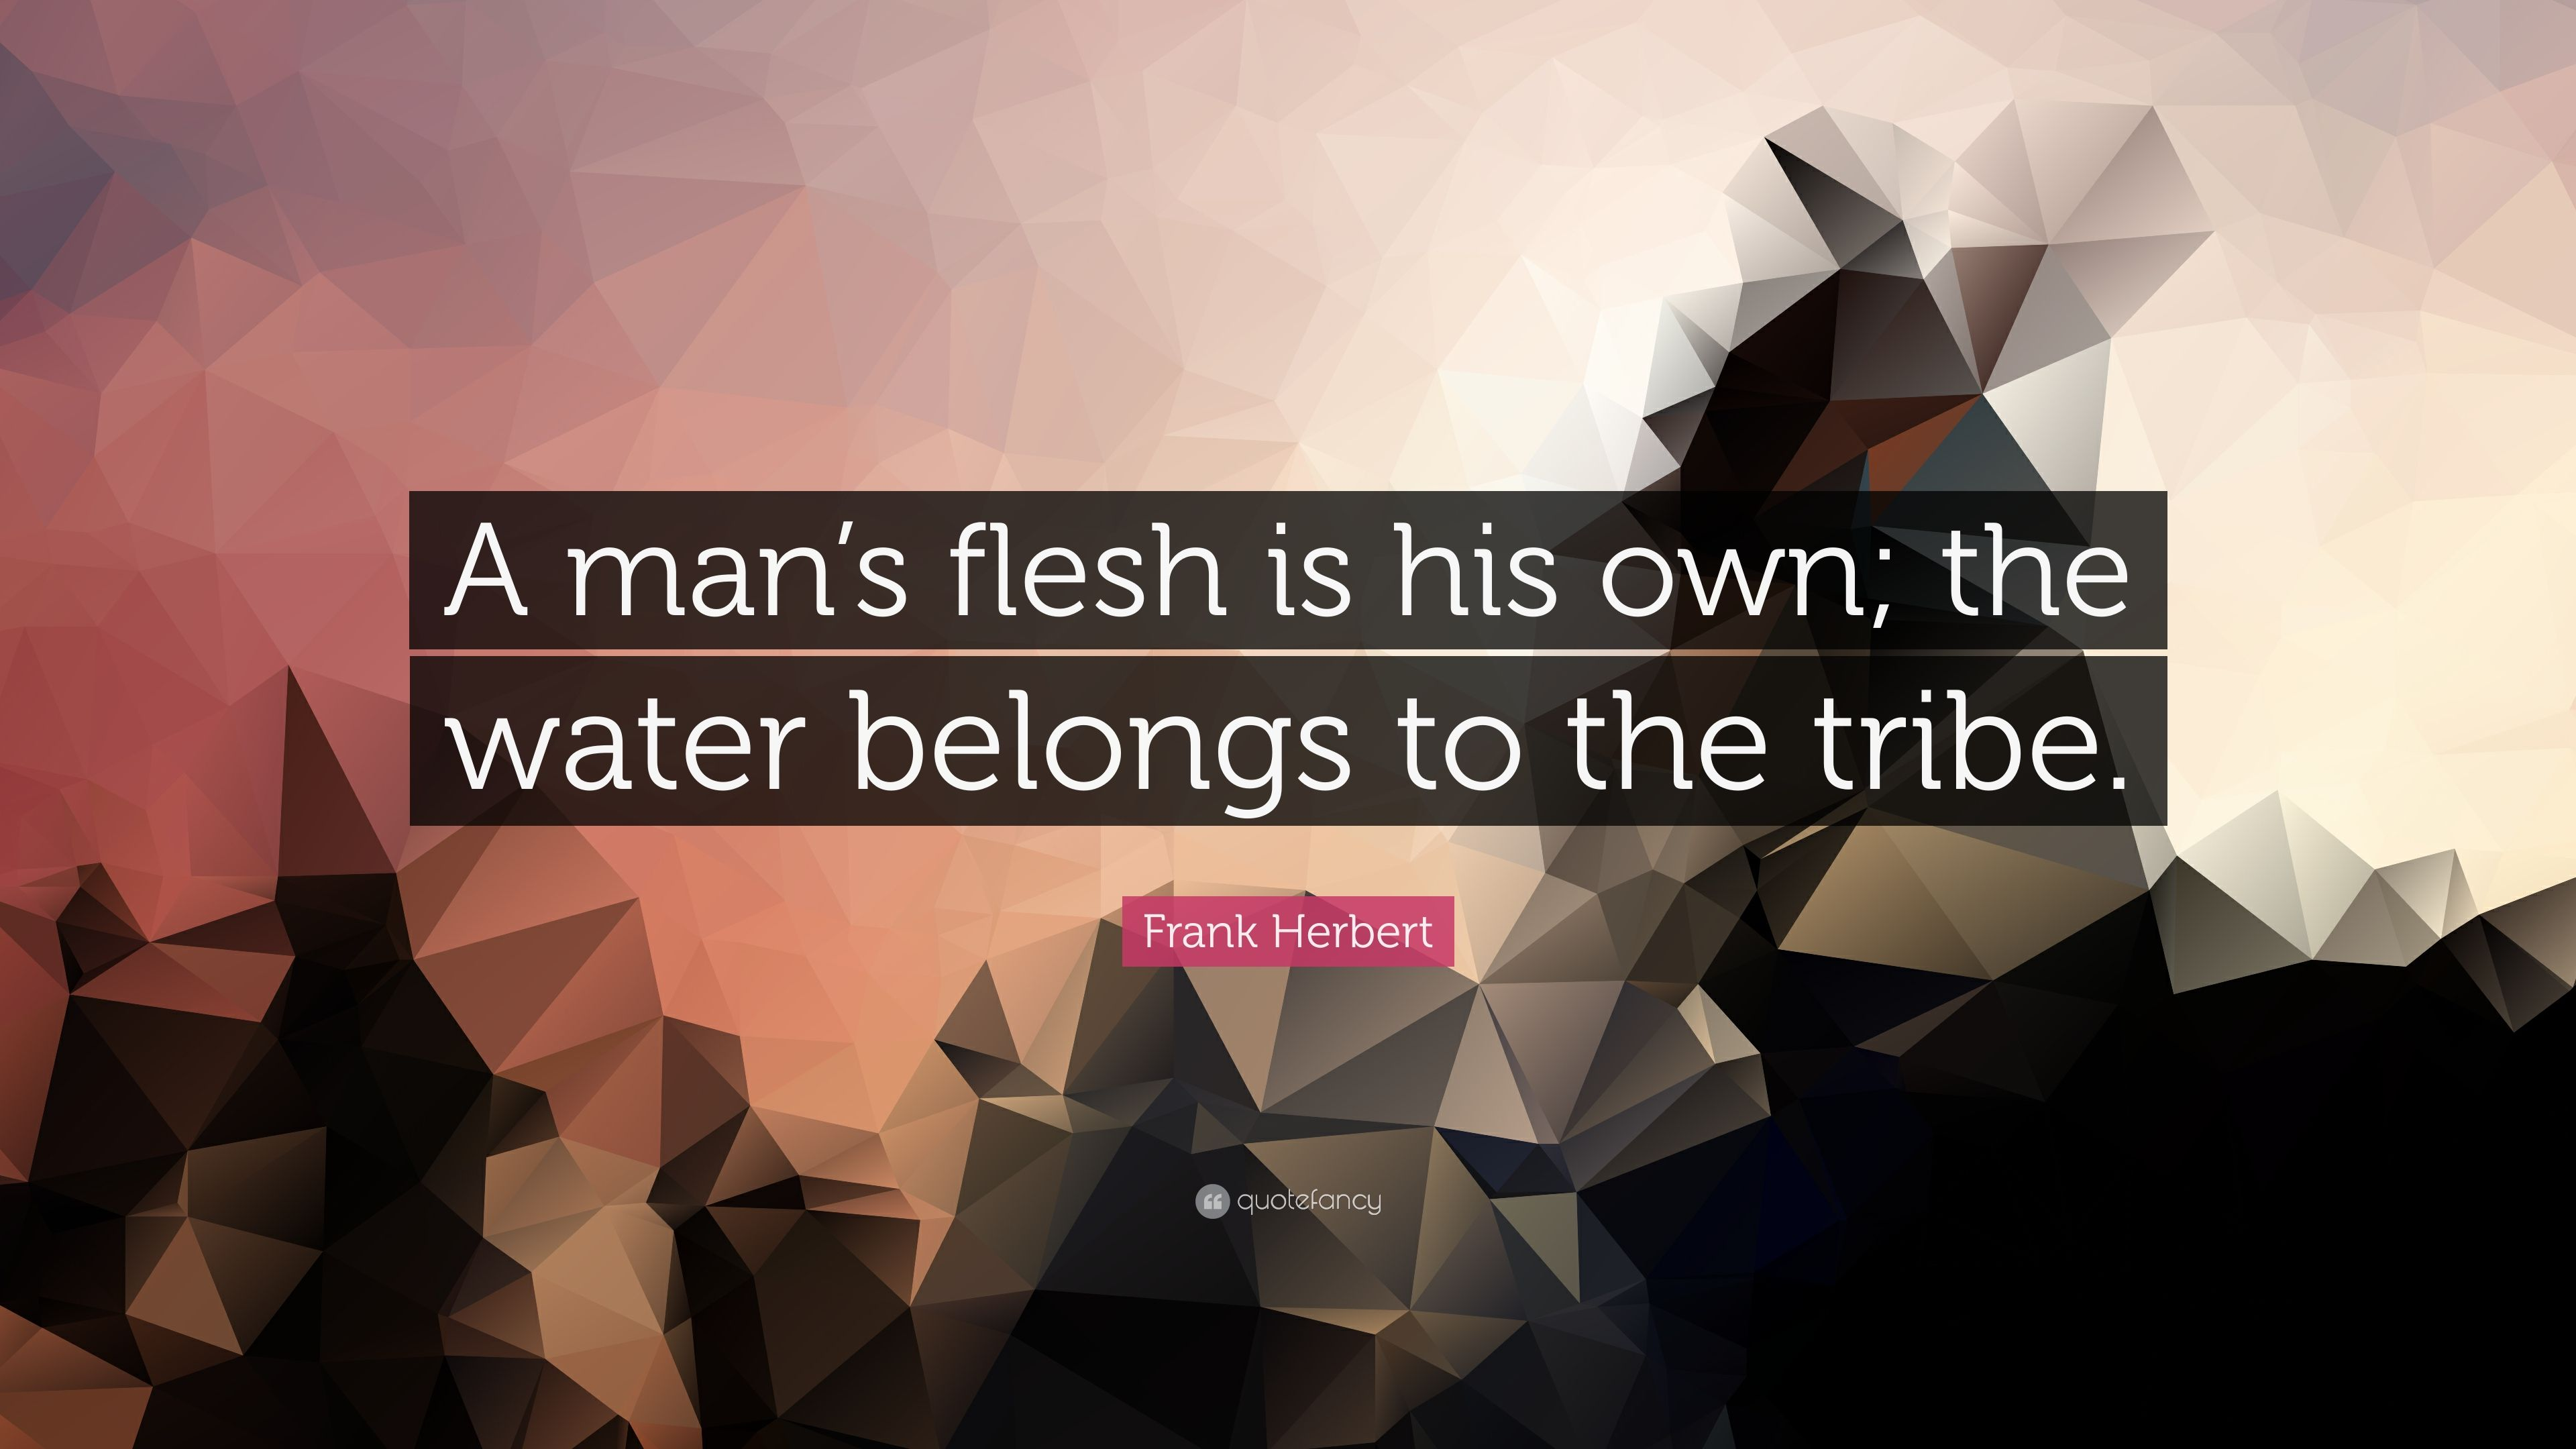 No Tribe of His Own